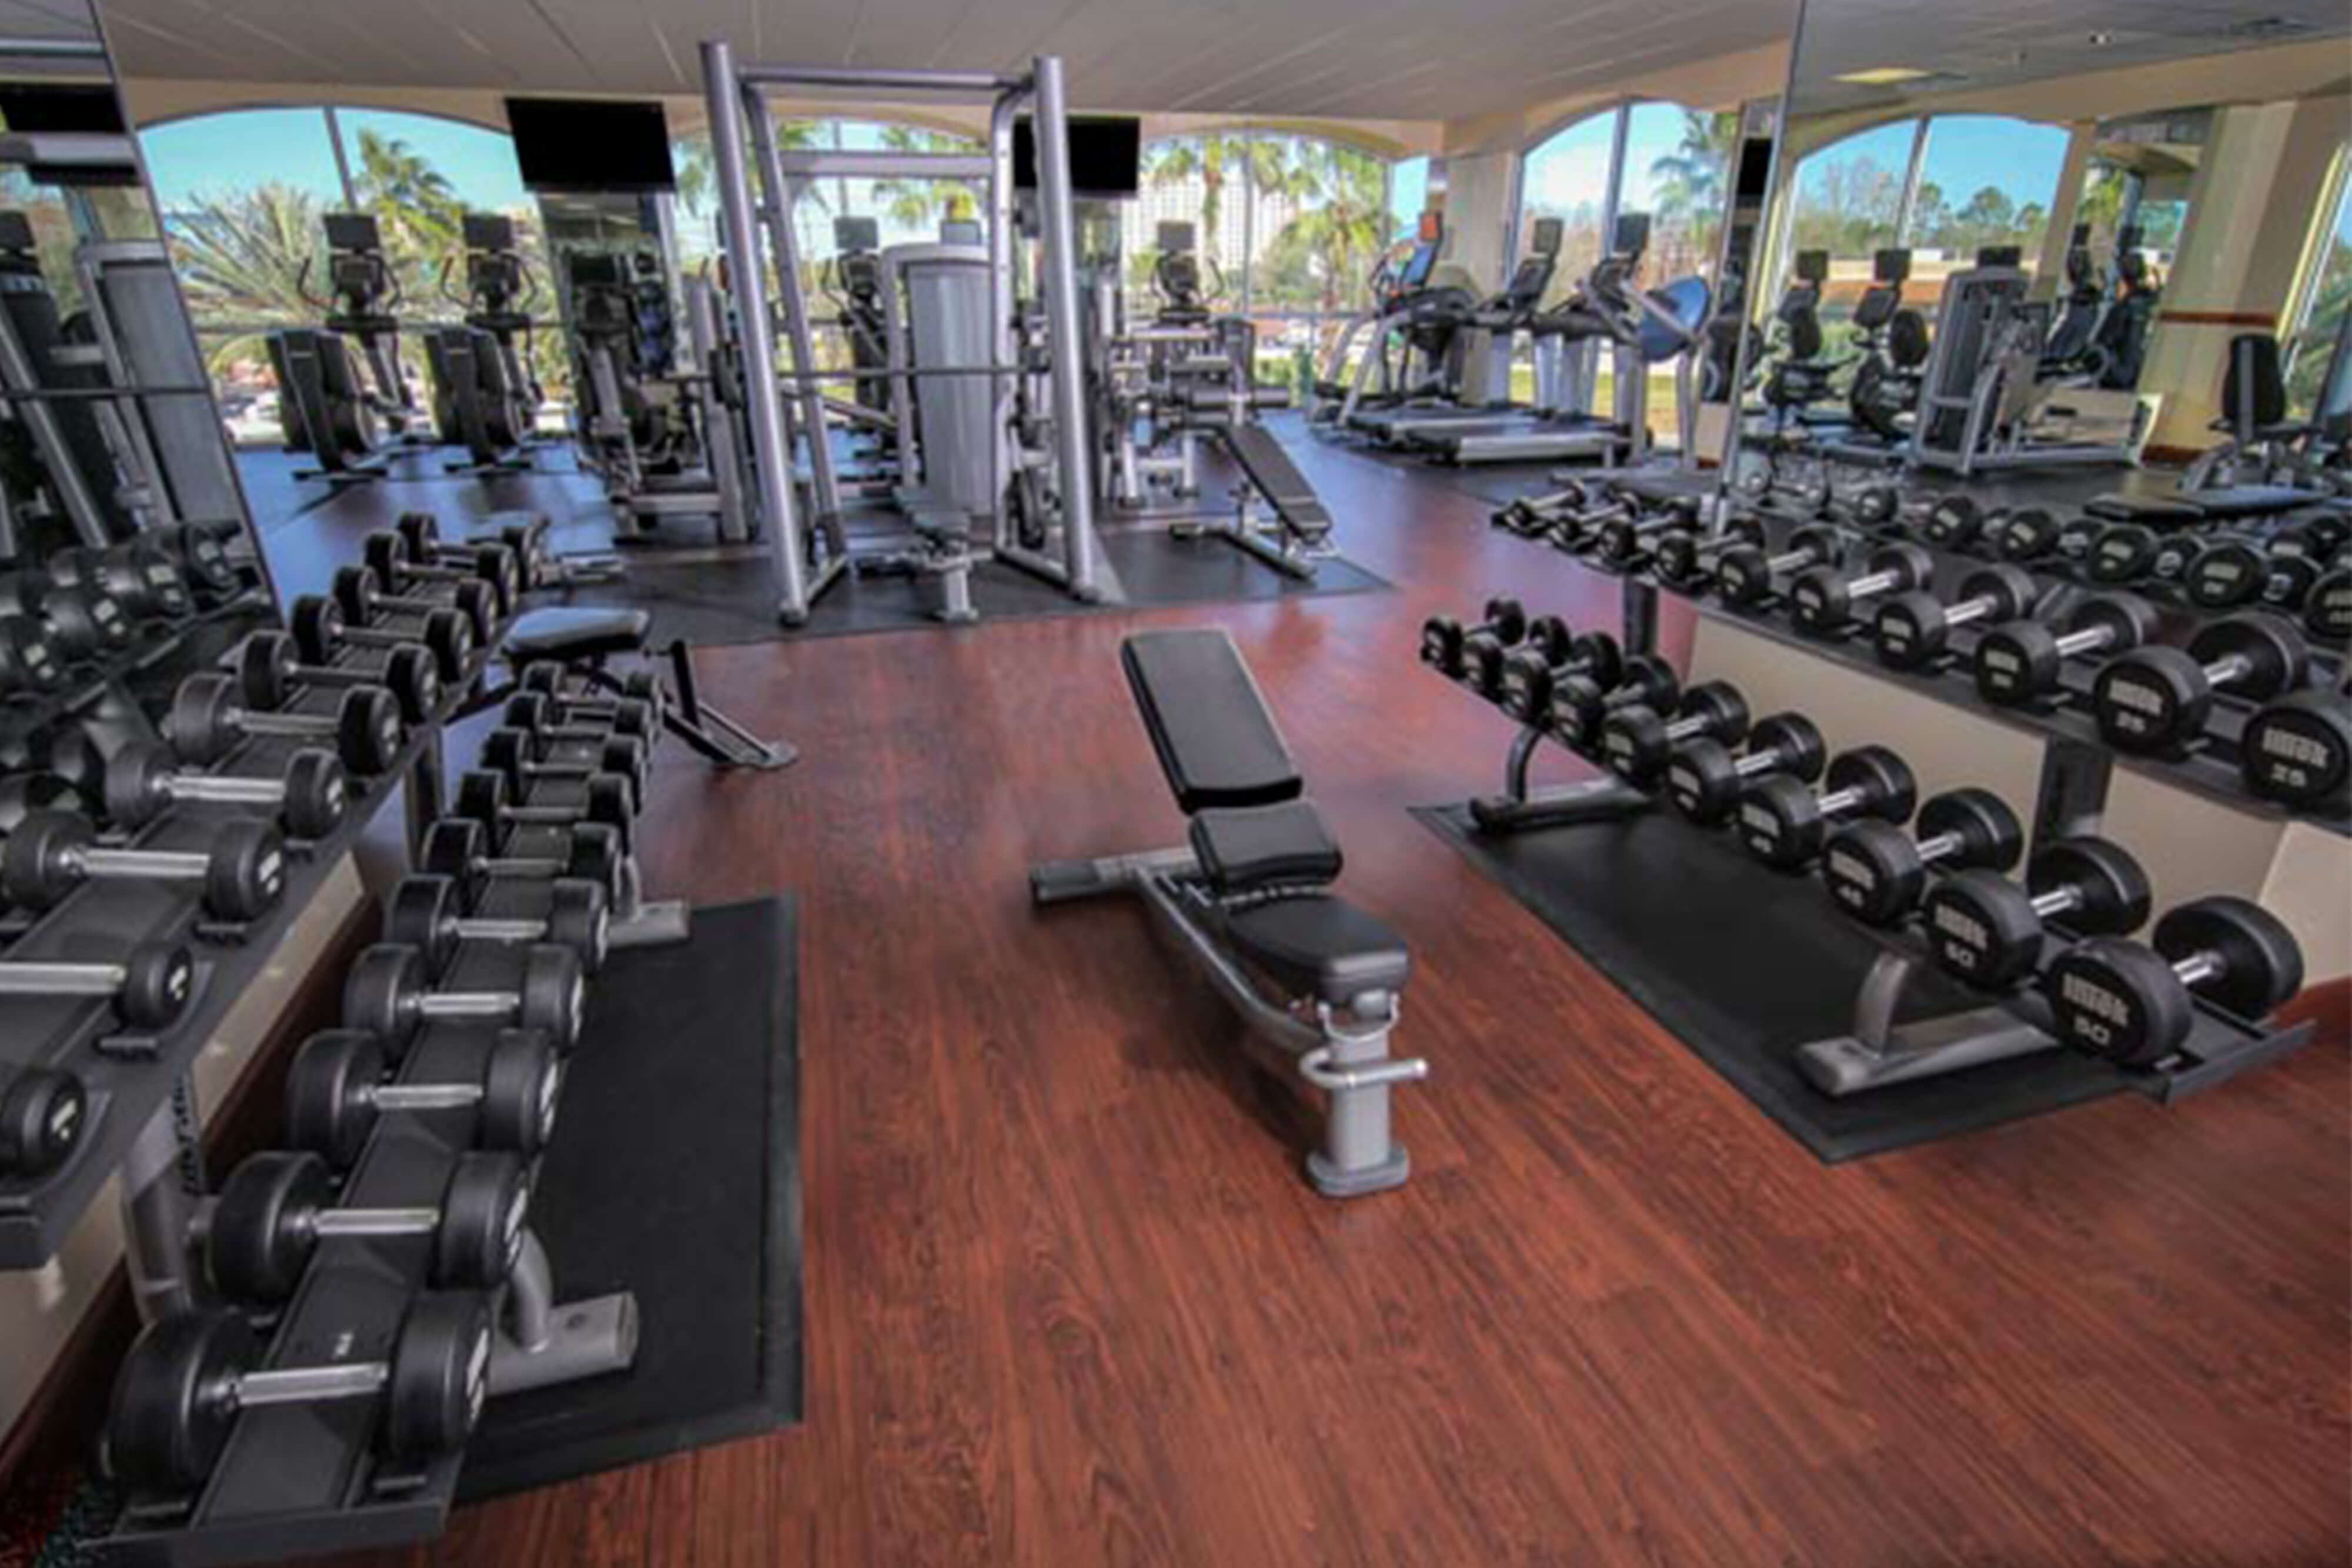 Fitness center westgate lakes resort spa in orlando for Salon fitness